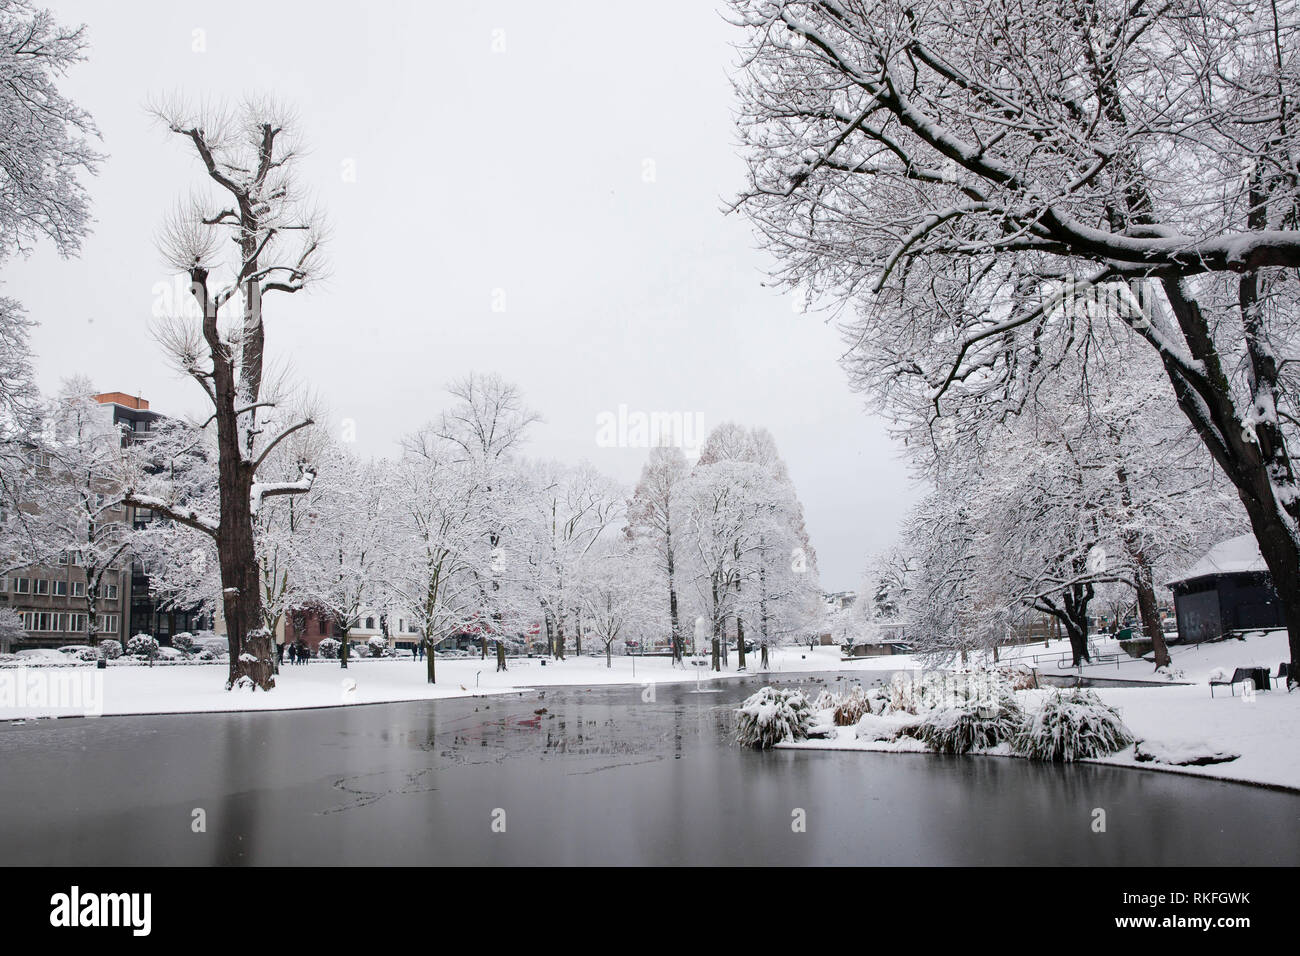 pond at the Theodor-Heuss-Ring near the square Ebertplatz, snow, winter, Cologne, Germany.  Weiher am Theodor-Heuss-Ring nahe Ebertplatz, Schnee, Wint Stock Photo